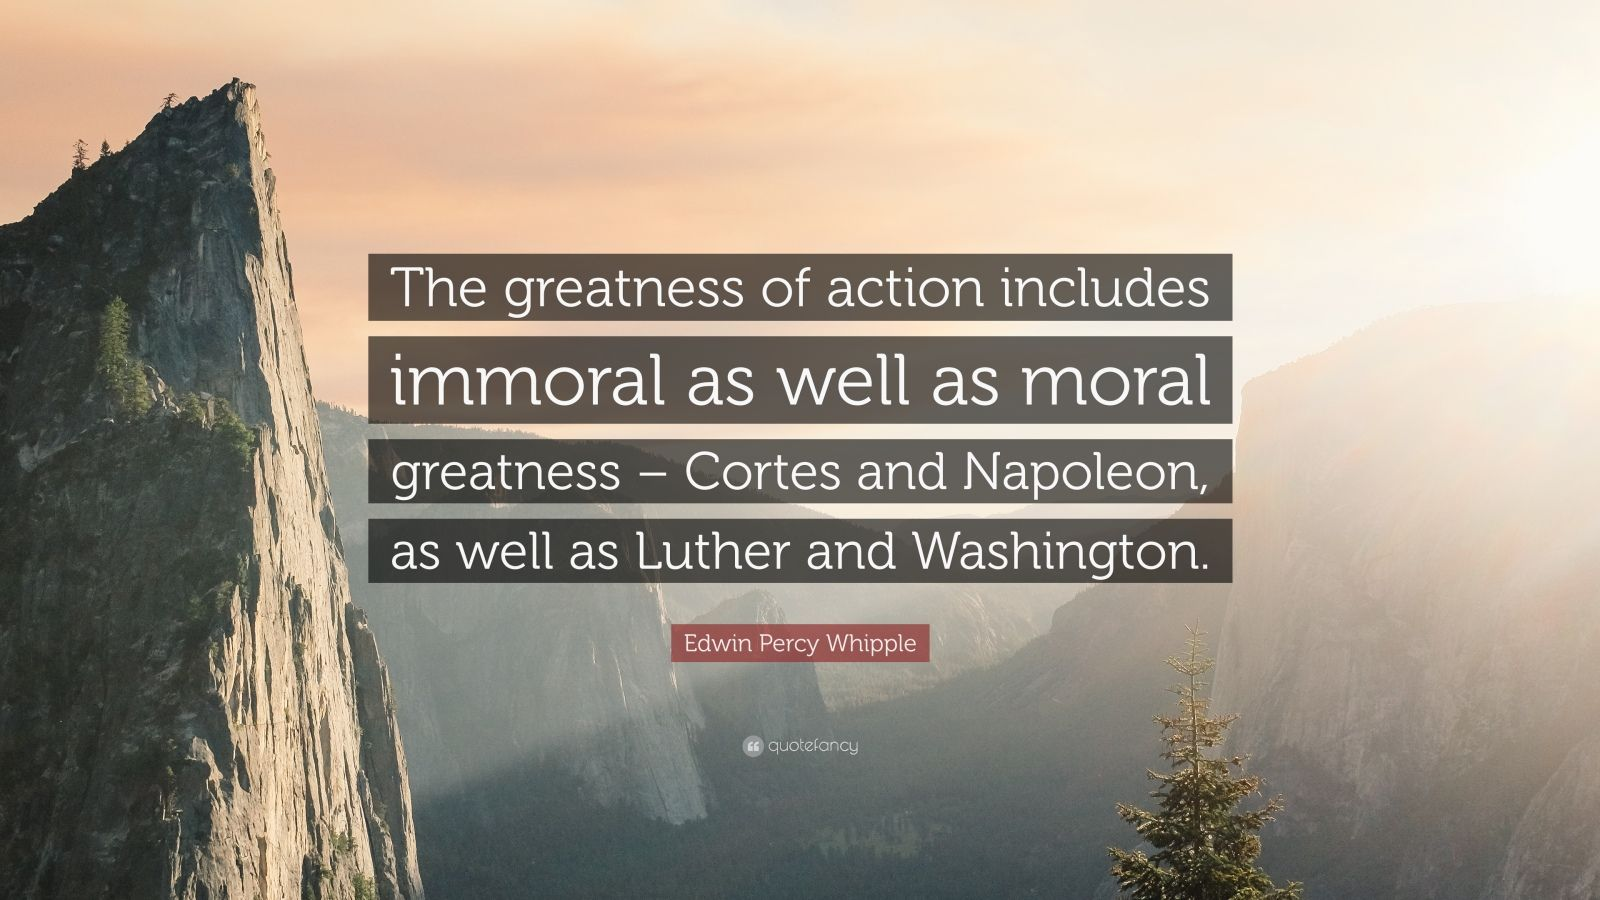 """Edwin Percy Whipple Quote: """"The greatness of action includes immoral as well as moral greatness – Cortes and Napoleon, as well as Luther and Washington."""""""